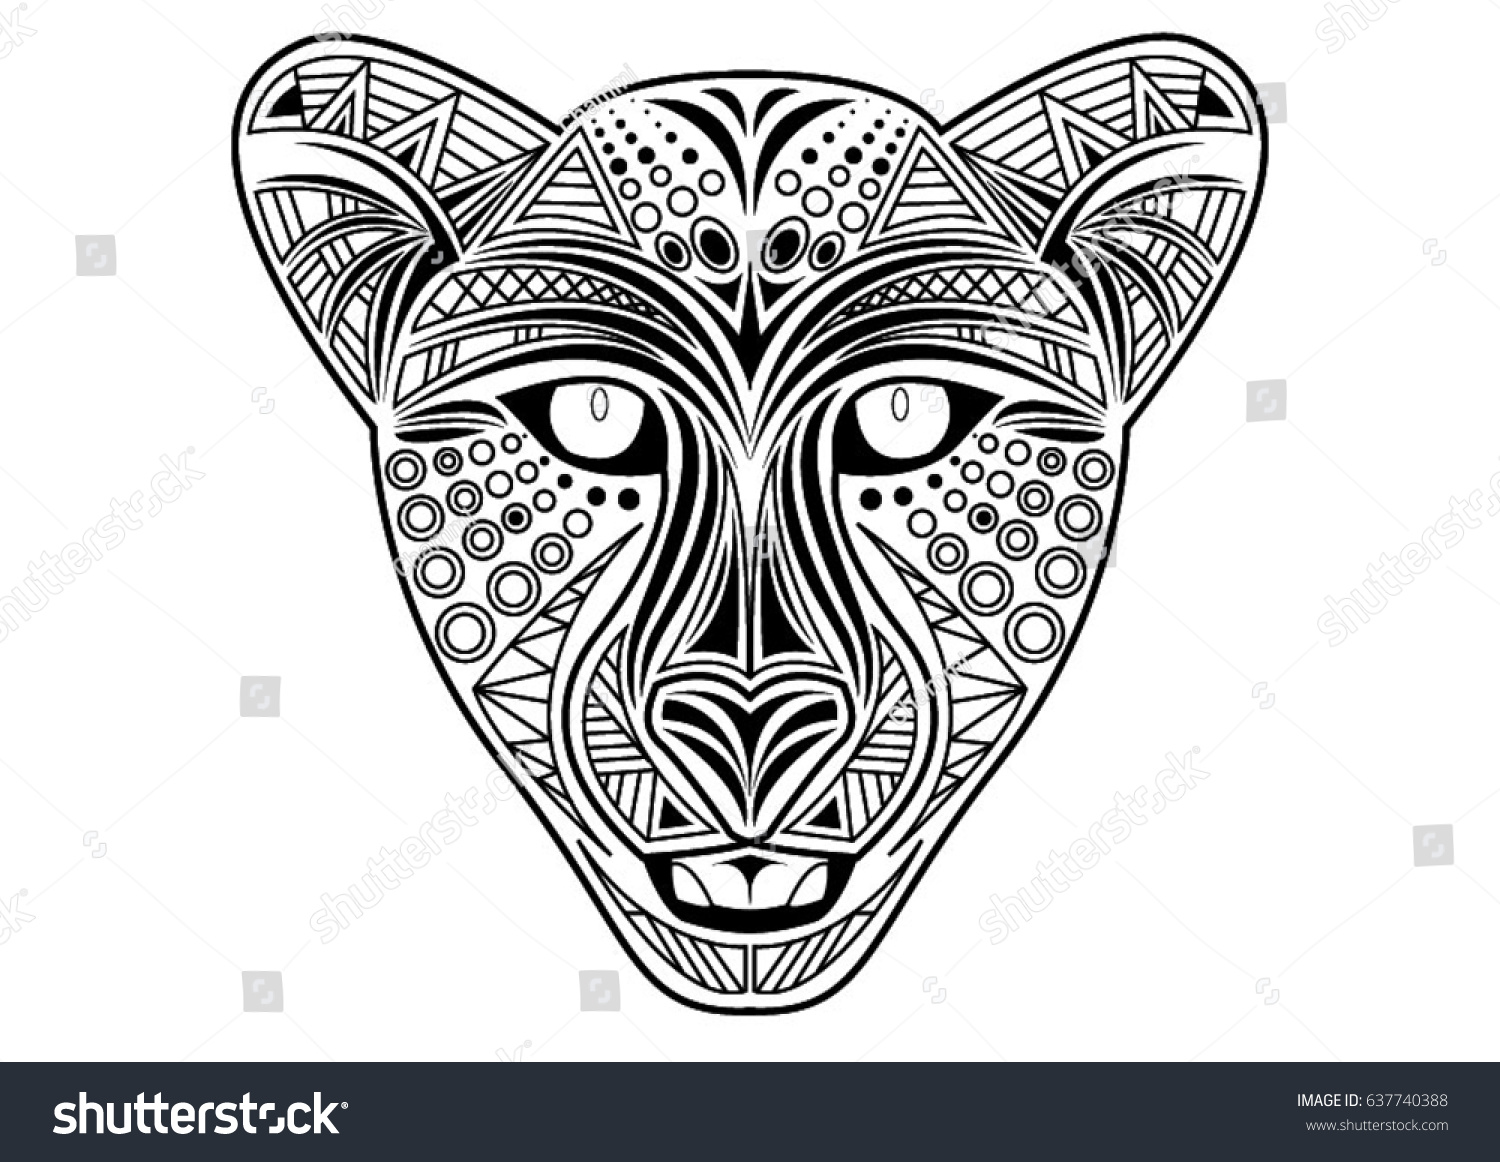 coloring page cheetah stock vector 637740388 shutterstock